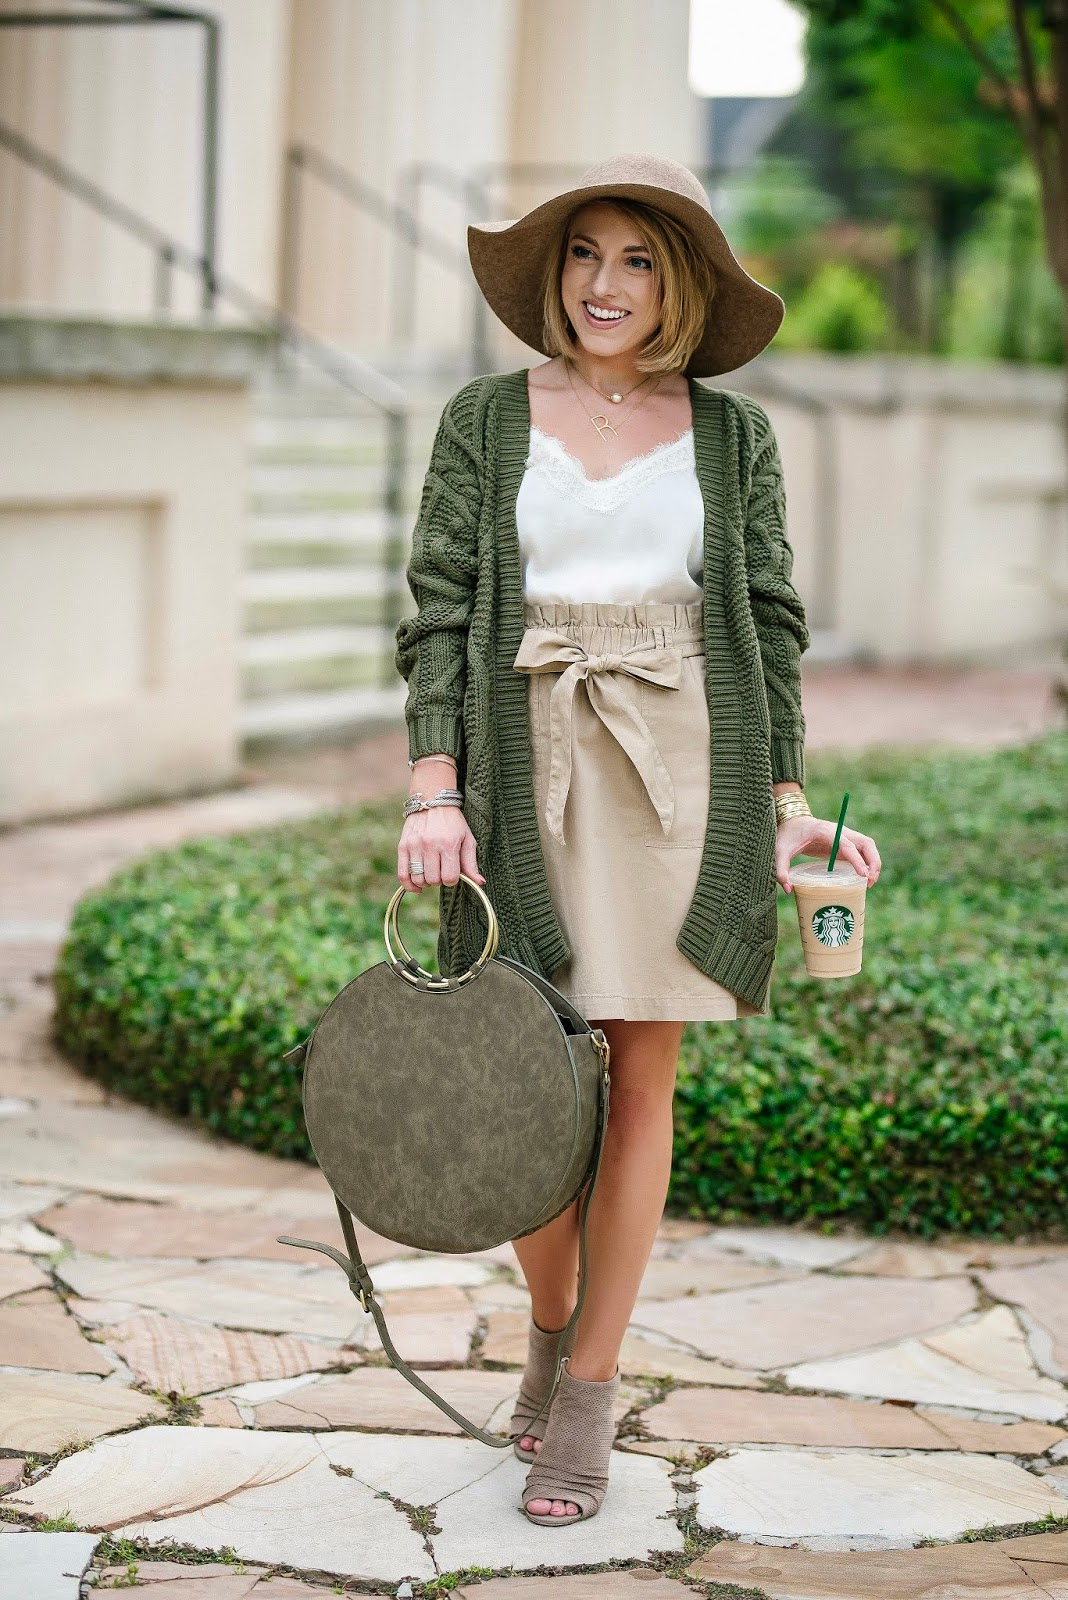 Twinning With My Starbucks Iced Coffee: $55 Paper Bag Waist Skirt & $48 Olive Green Cardigan - Something Delightful Blog